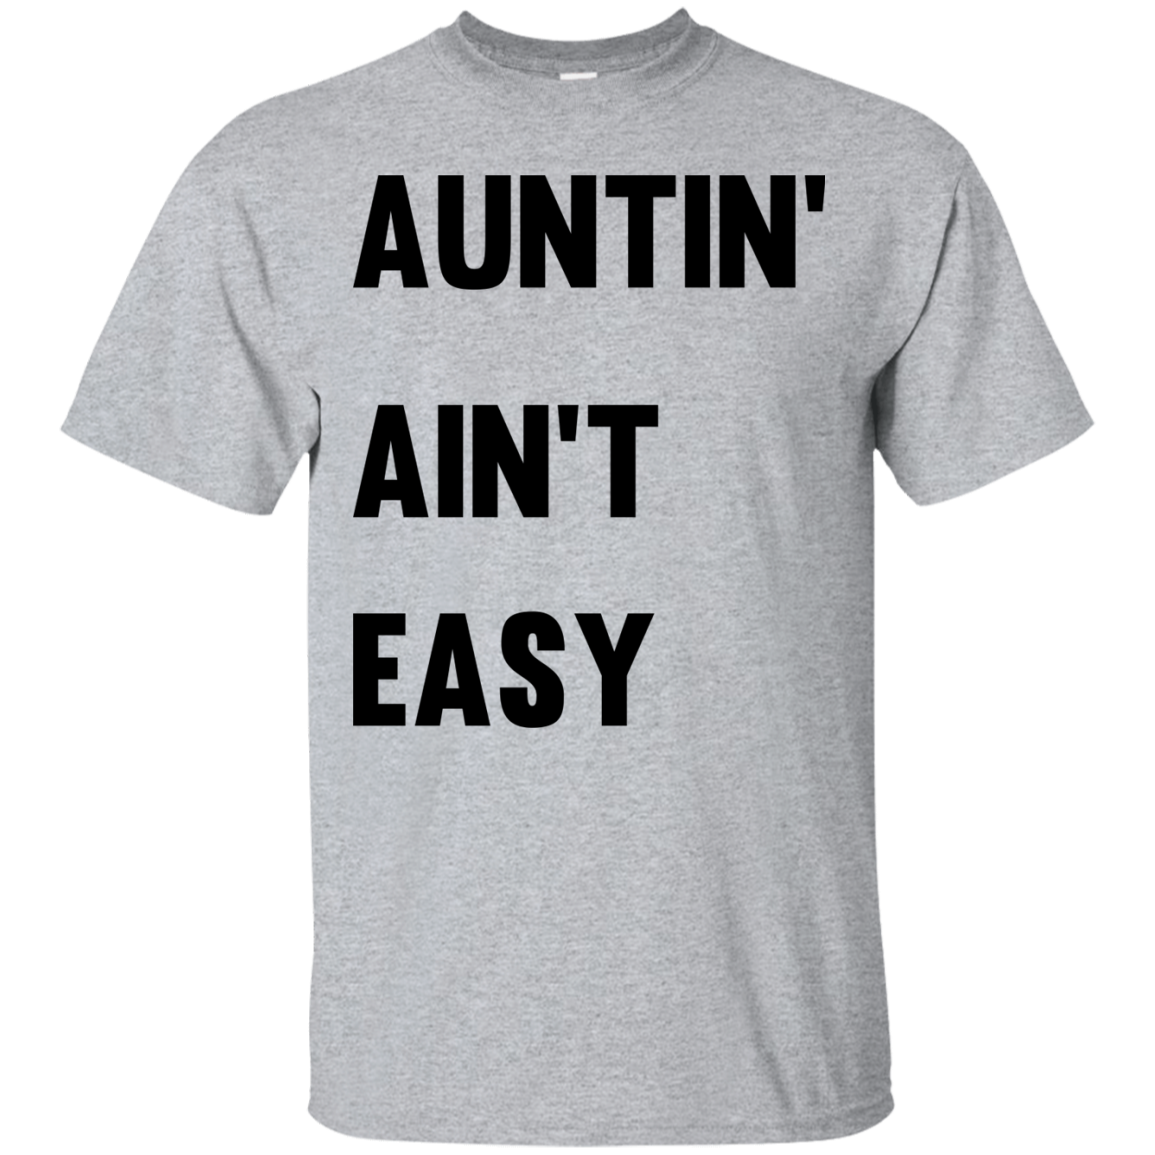 image 206px Aunt Shirt: Auntin' Ain't Easy T Shirts, Hoodies, Long Sleeves